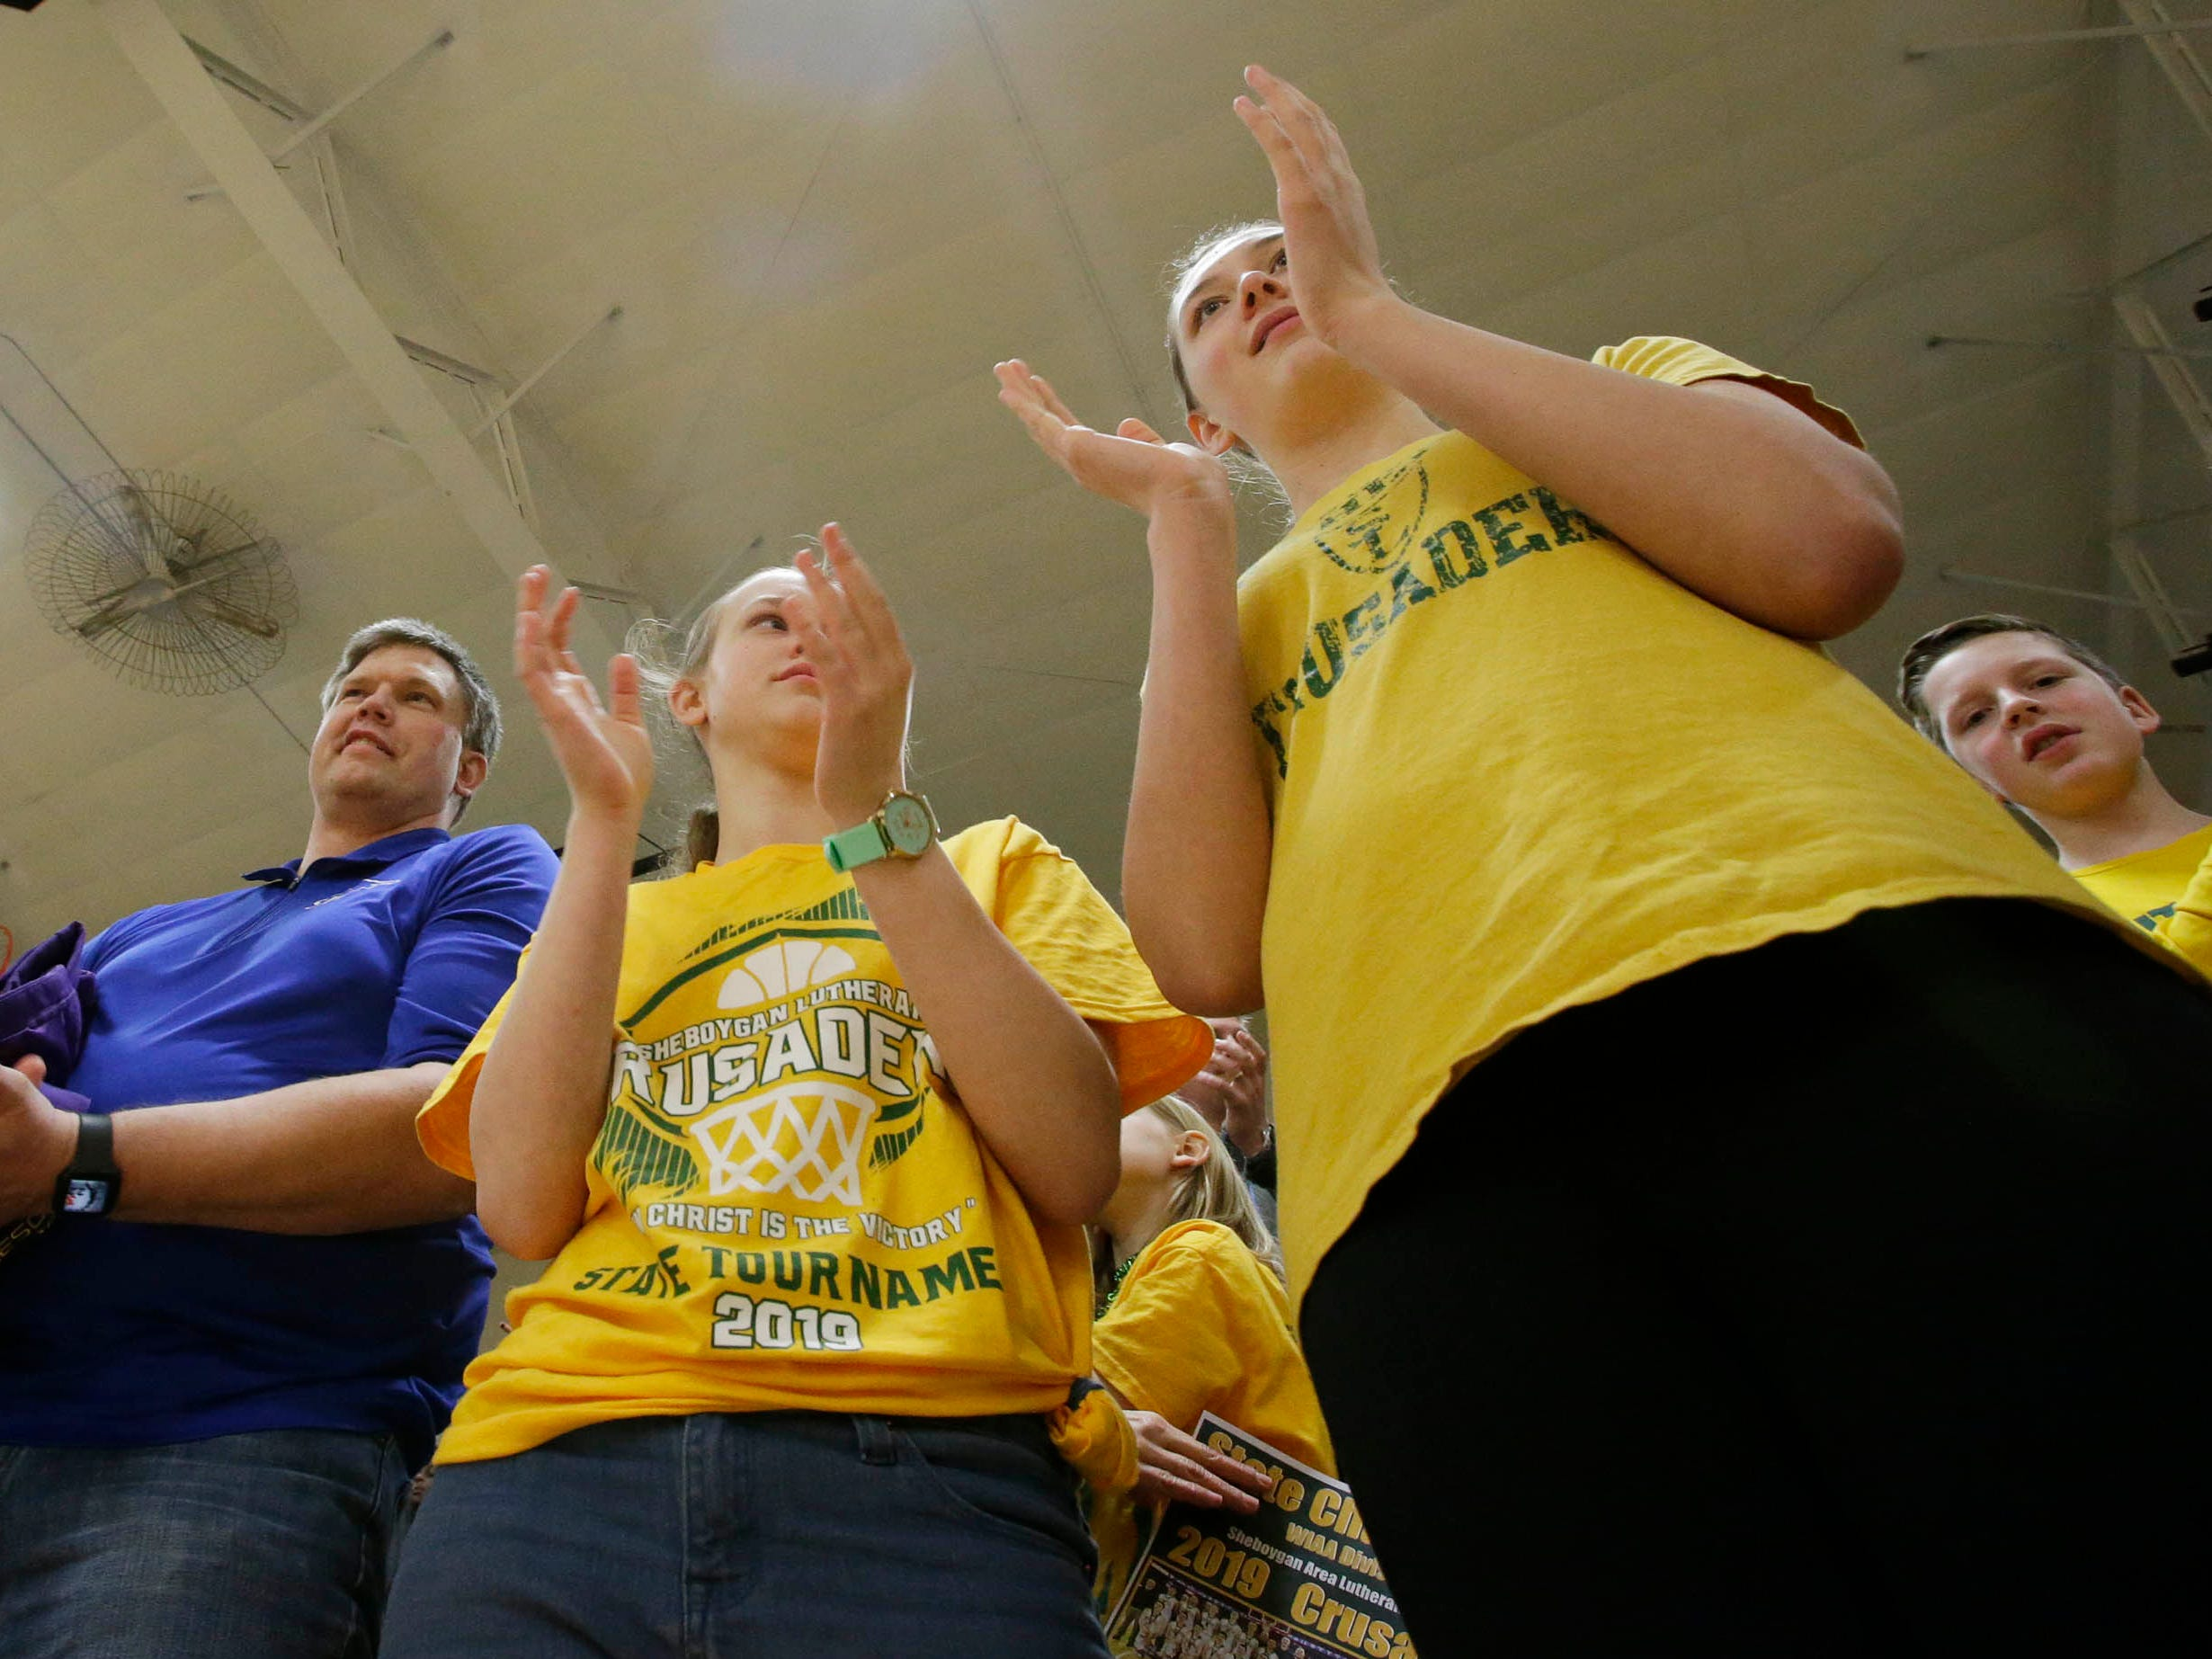 Sheboygan Lutheran fans applaud during the Championship rally, Sunday, March 17, 2019, in Sheboygan, Wis.